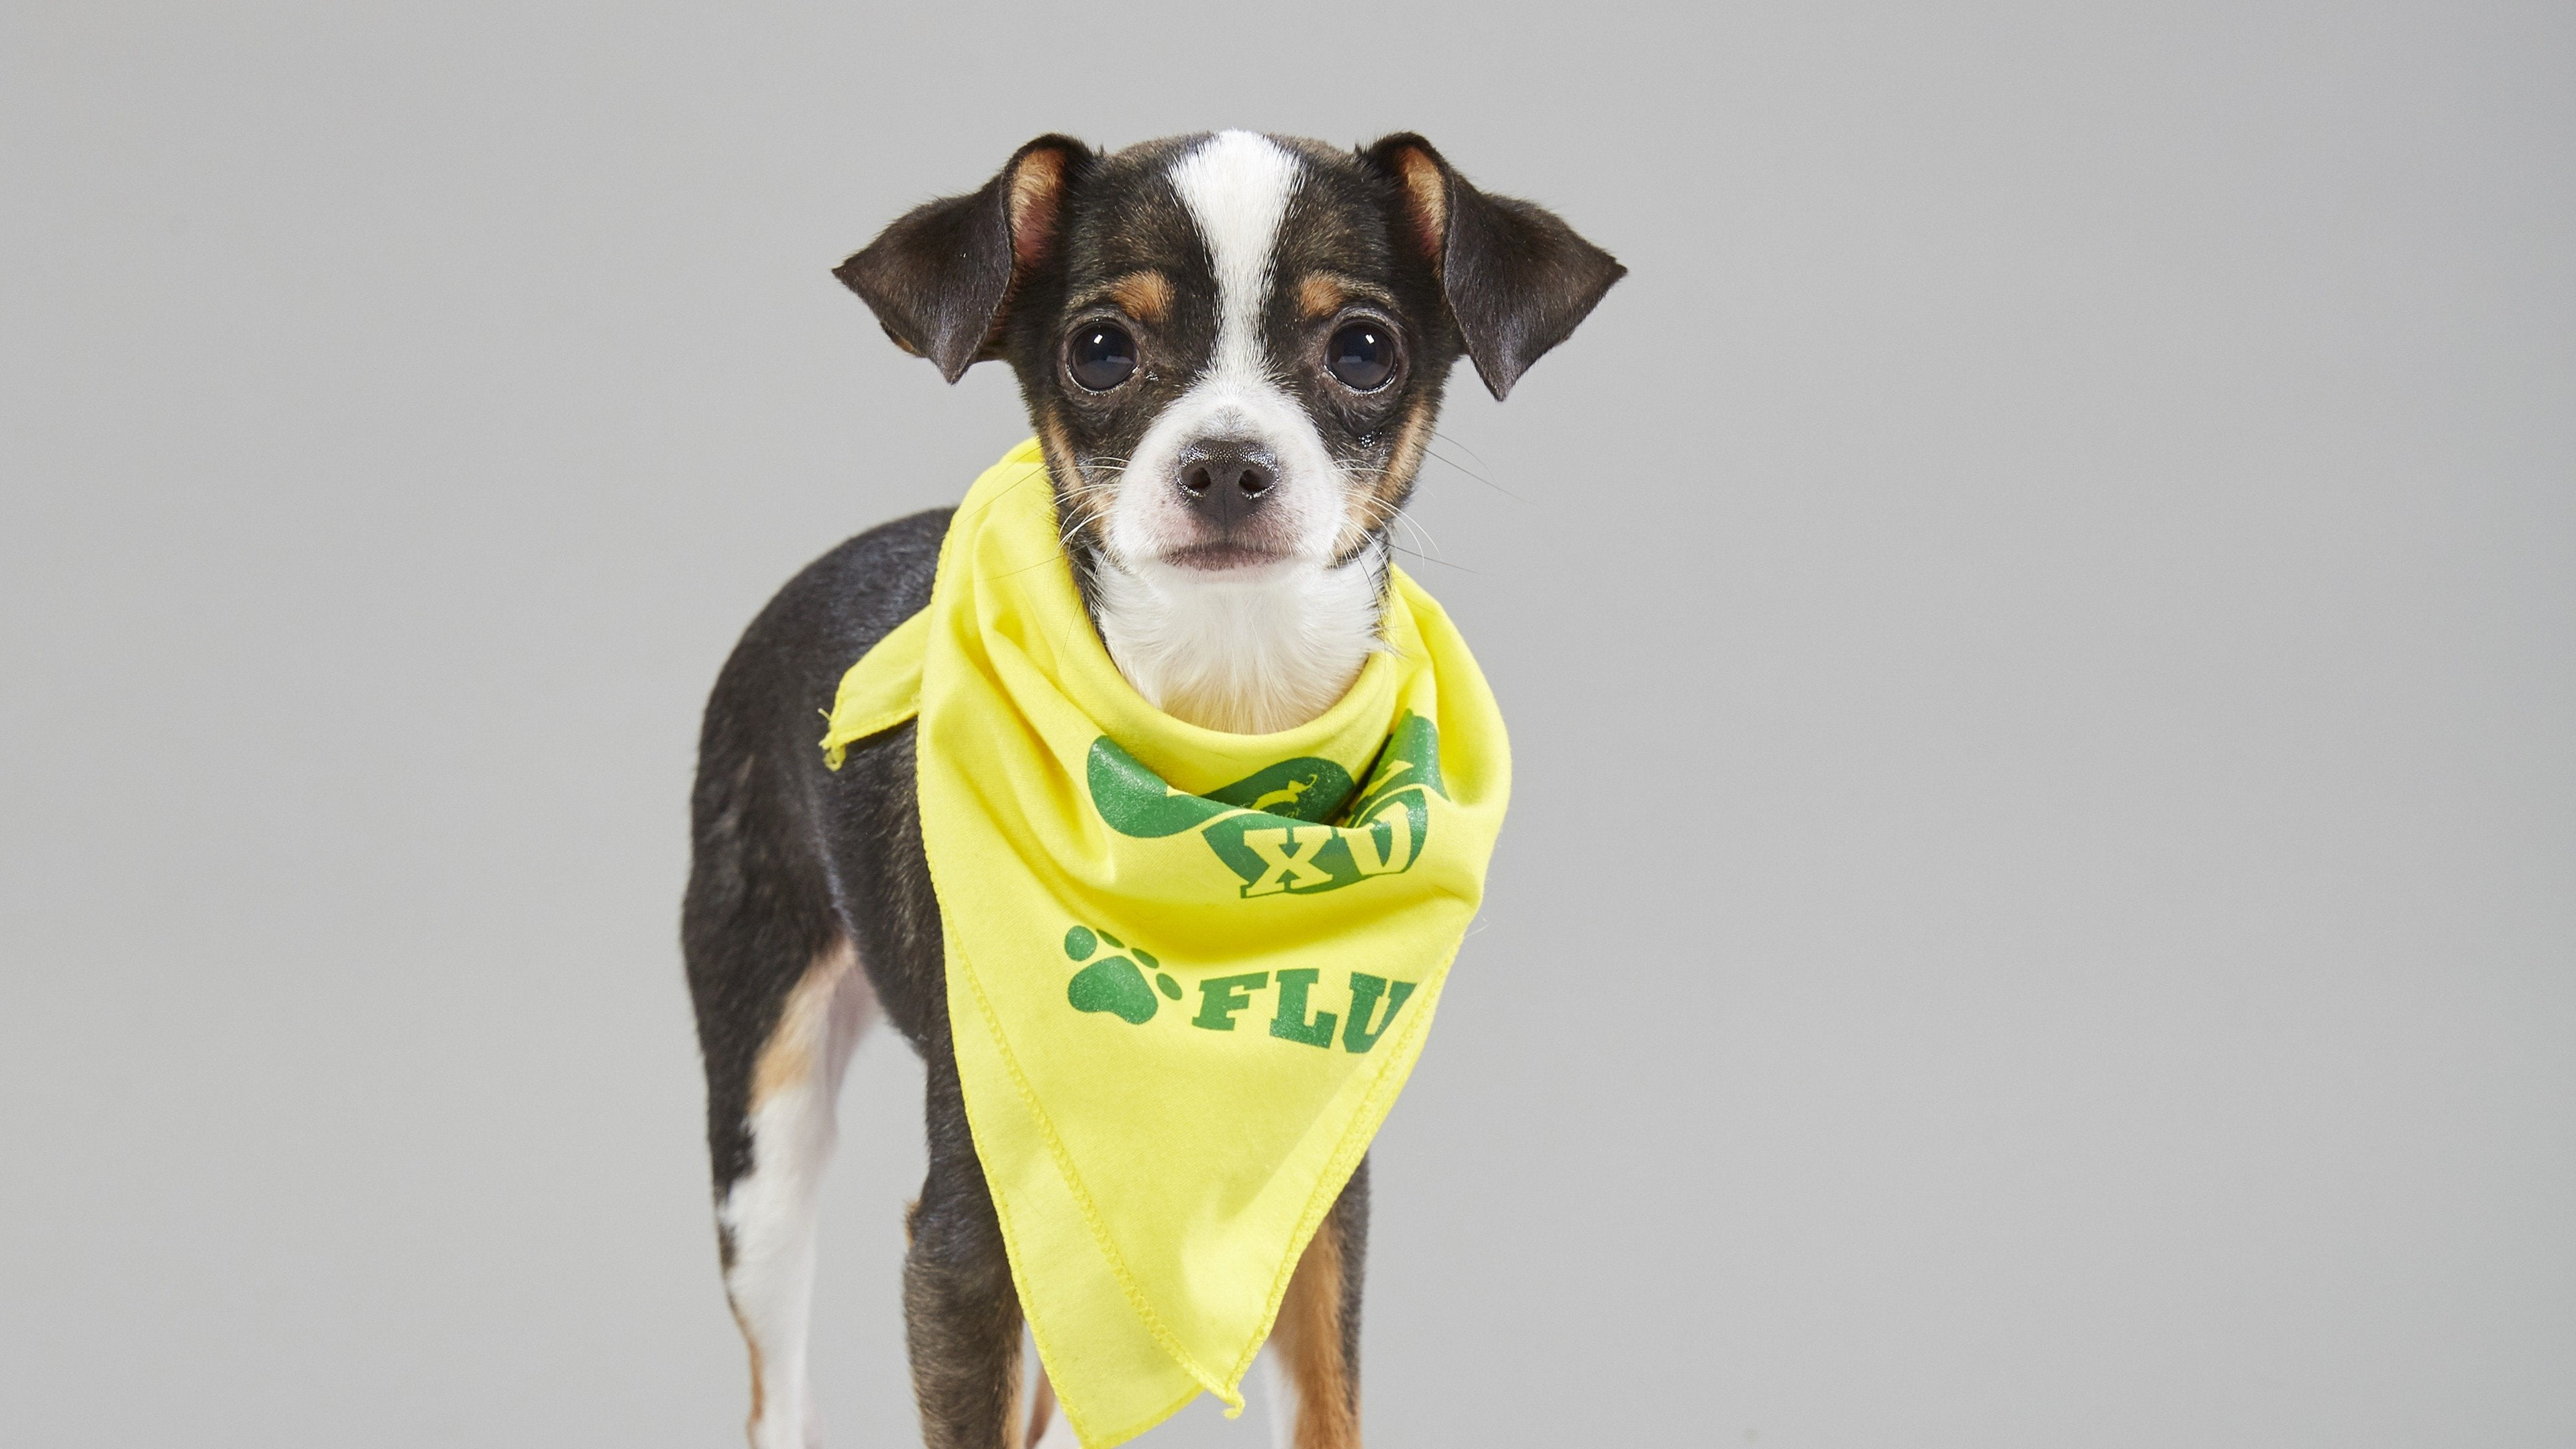 Puppy Bowl XV Presents: Too Cute! For Puppy Bowl